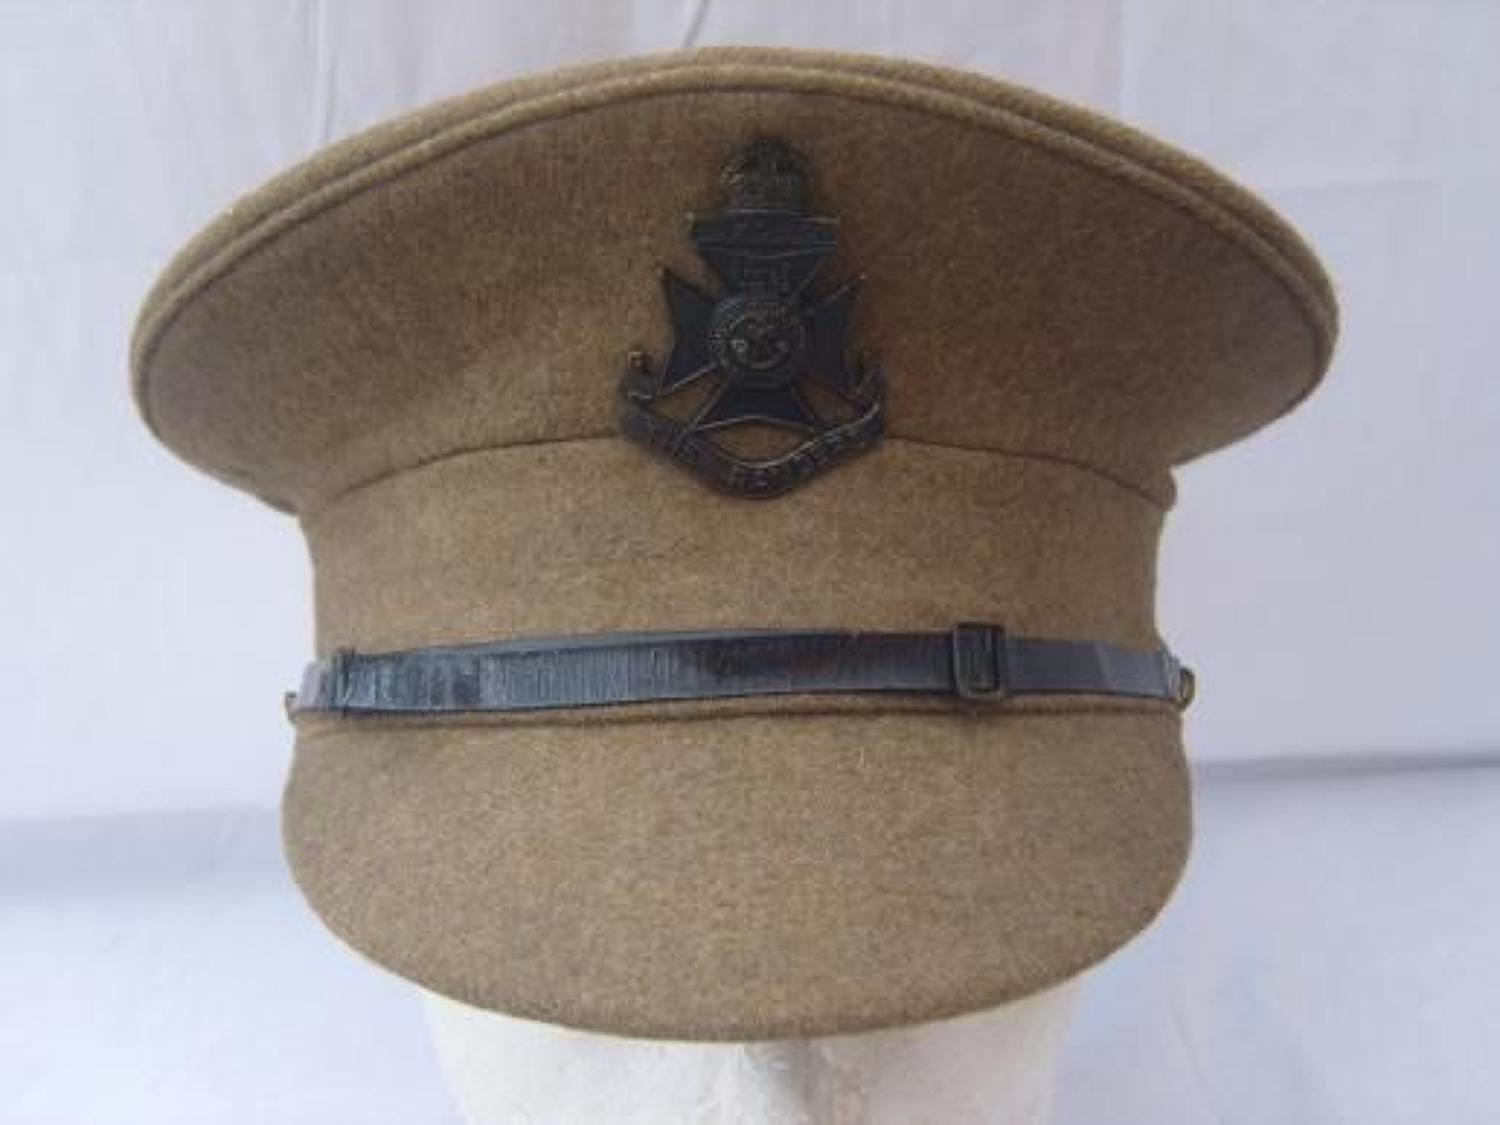 WW1 BRITISH RIFLES SERVICE DRESS CAP: THE RANGERS